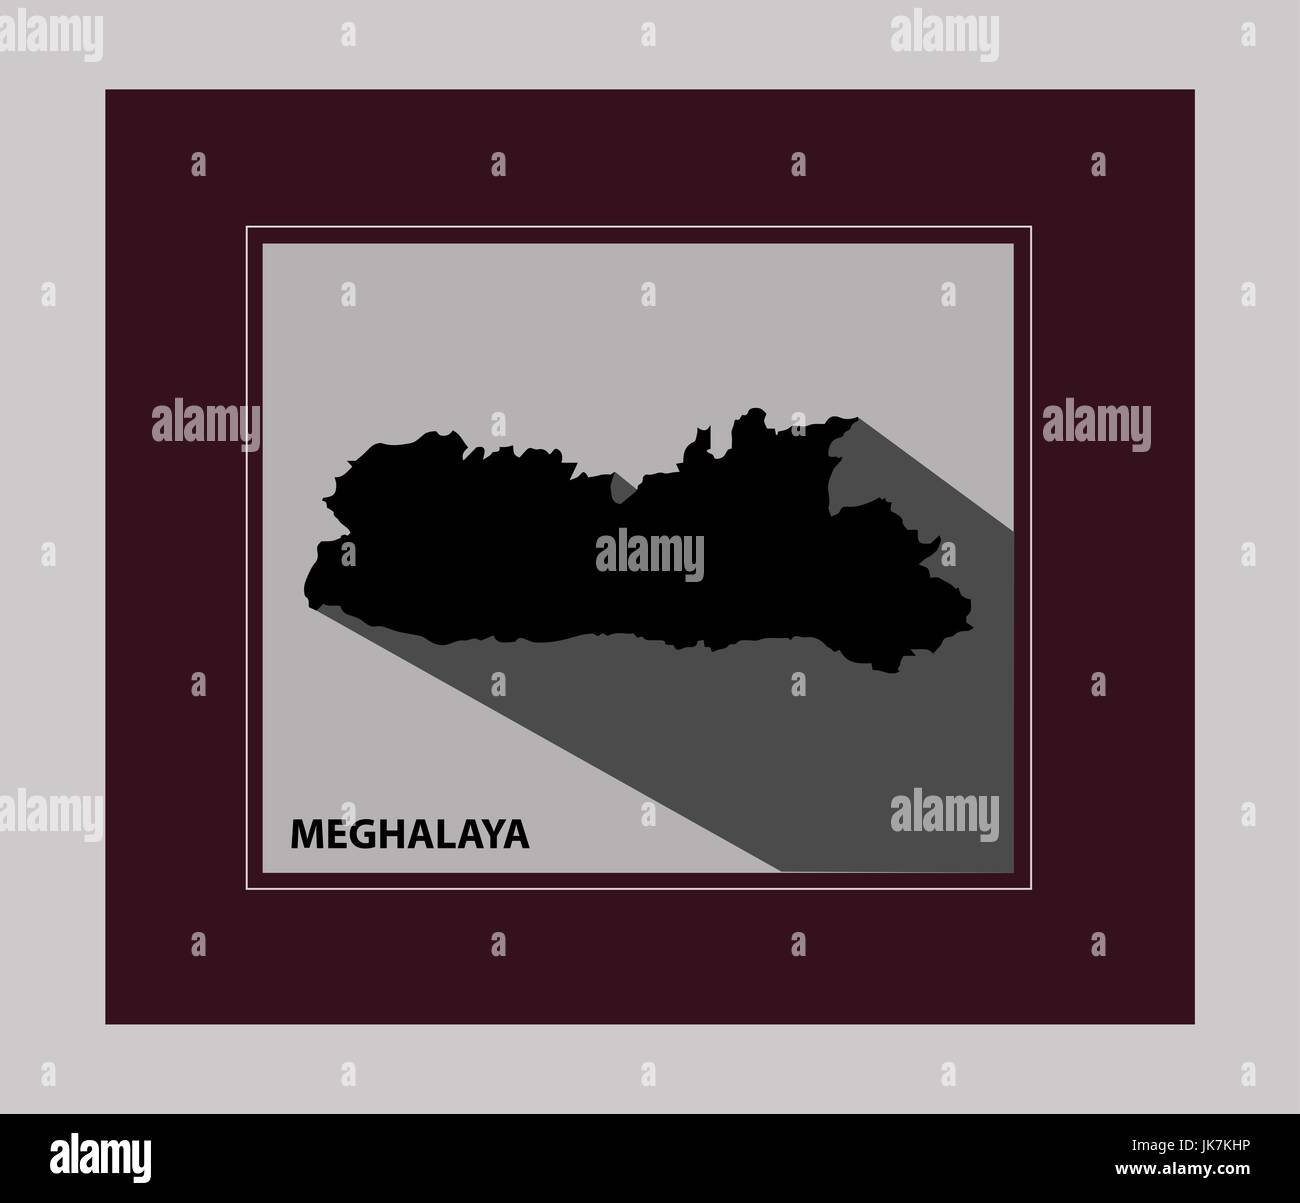 The state of Meghalaya - Stock Vector